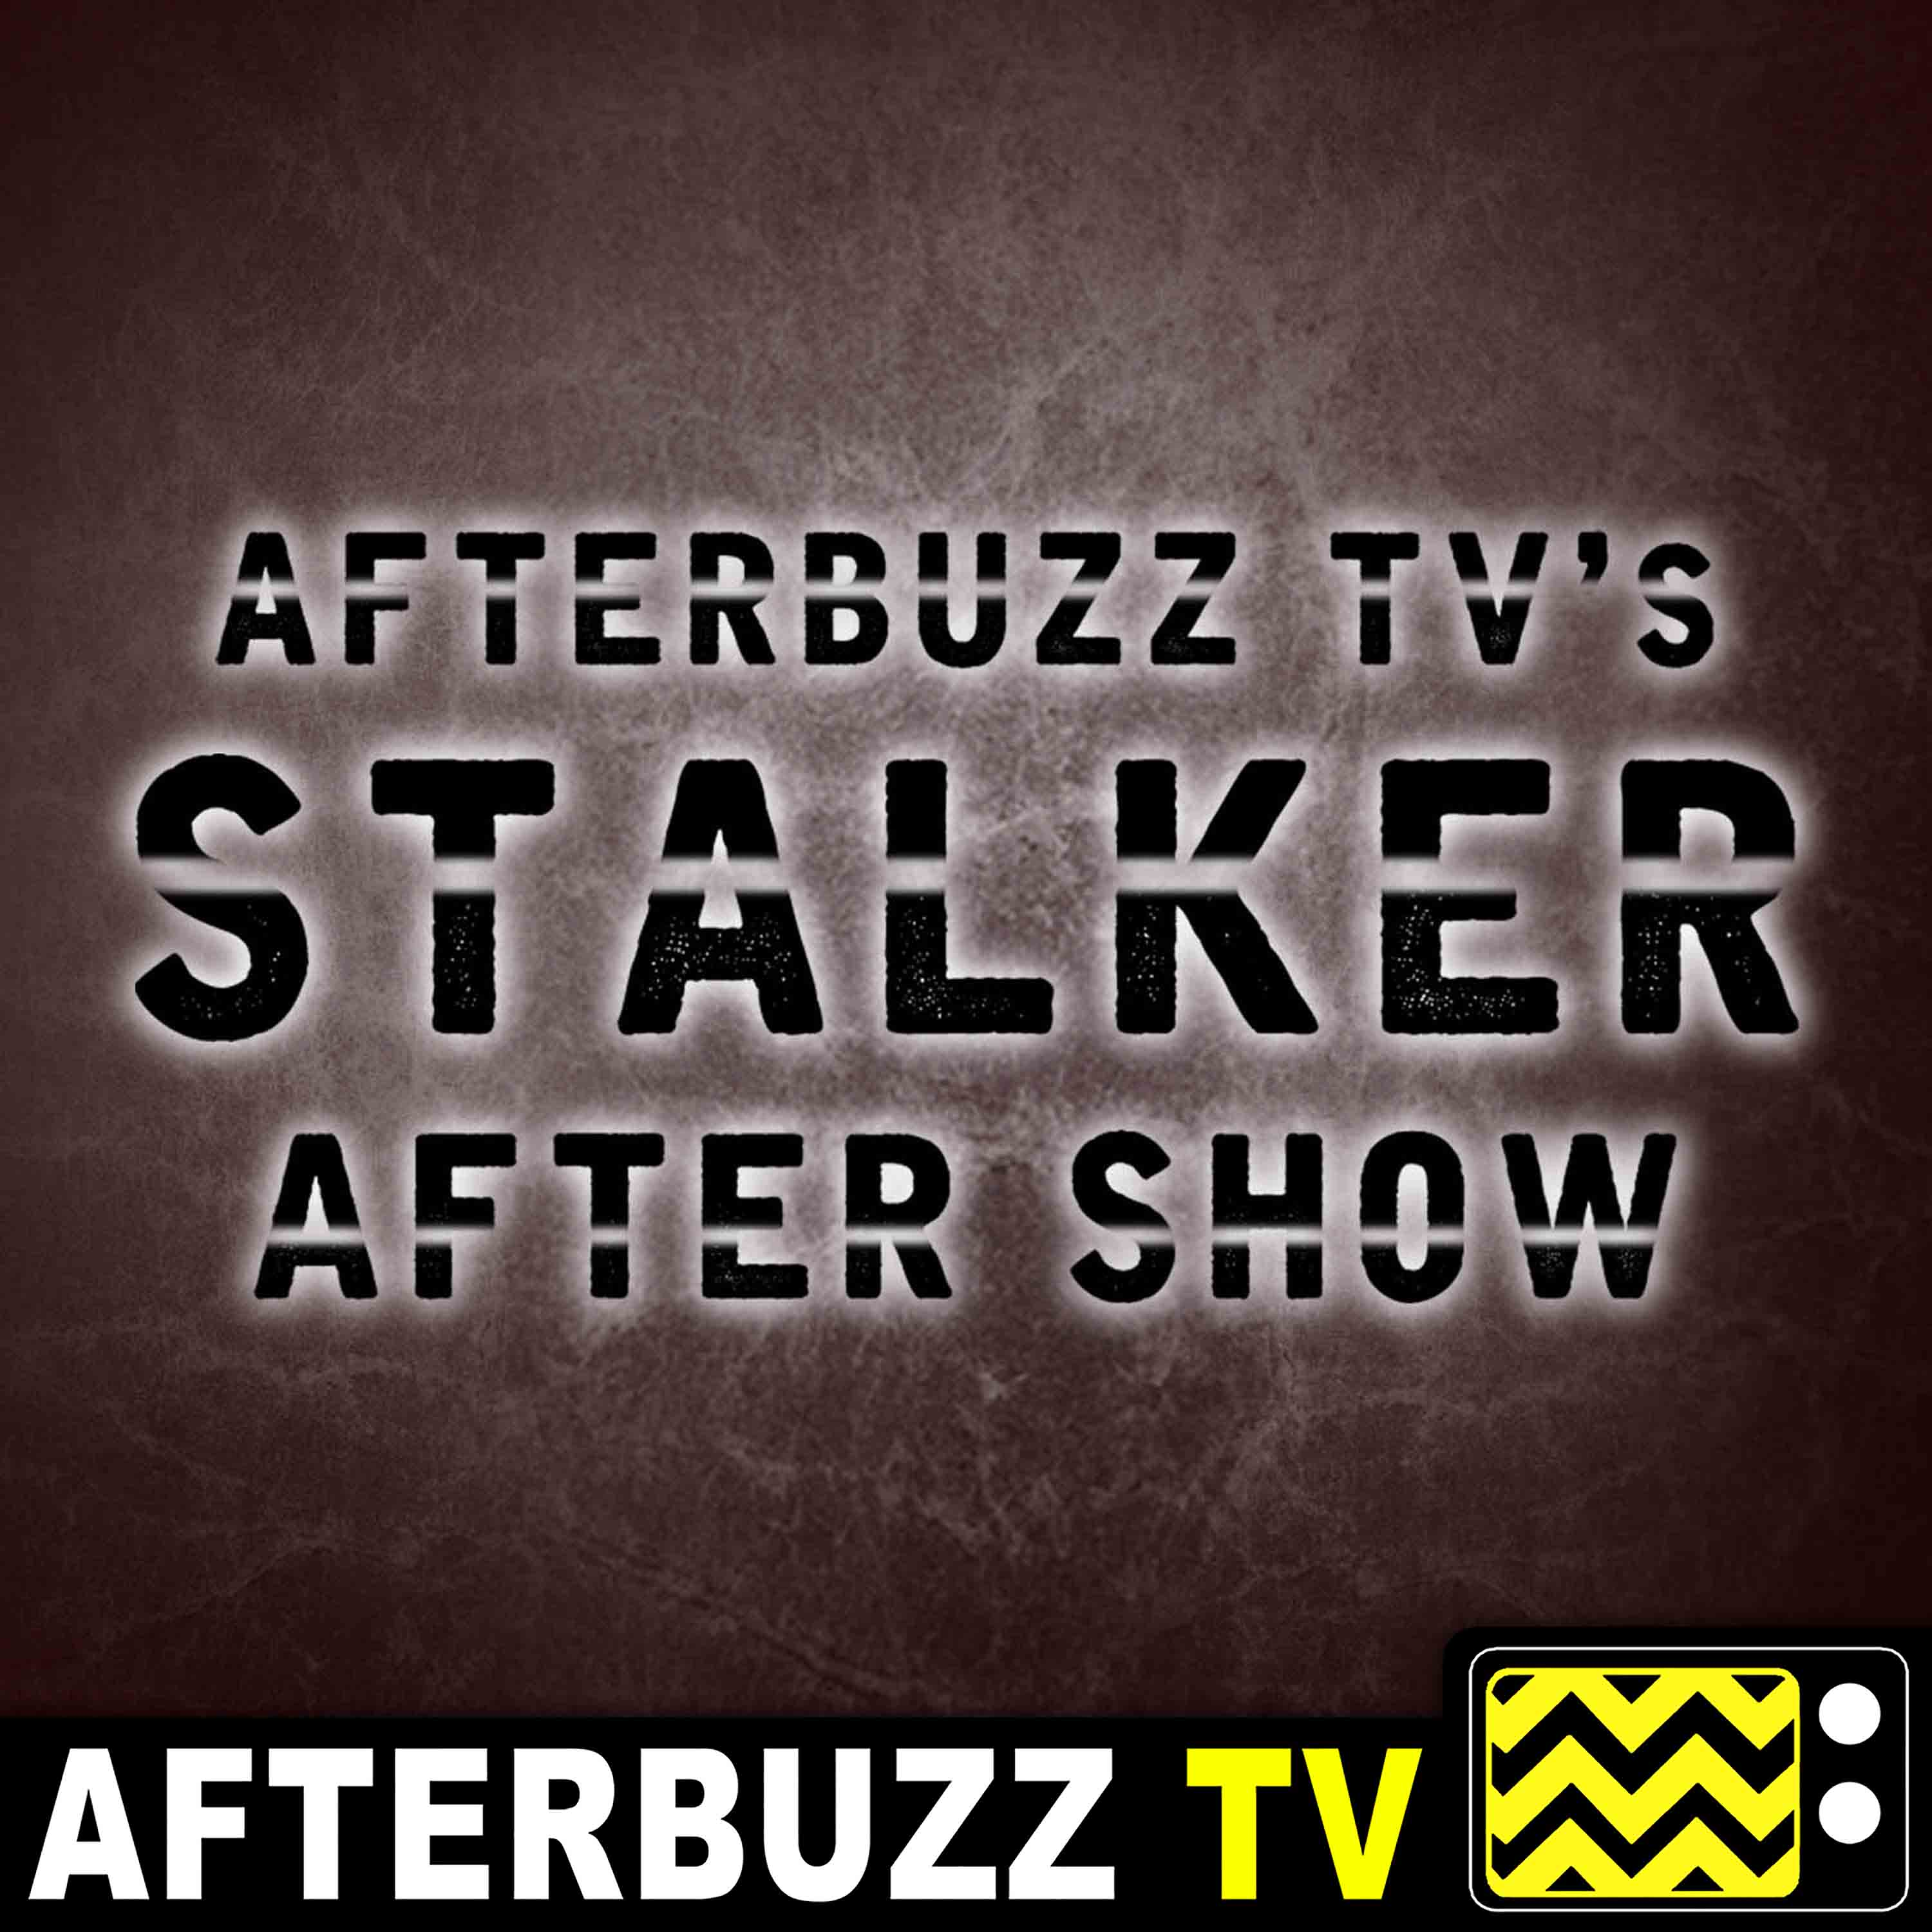 Stalker Reviews and After Show